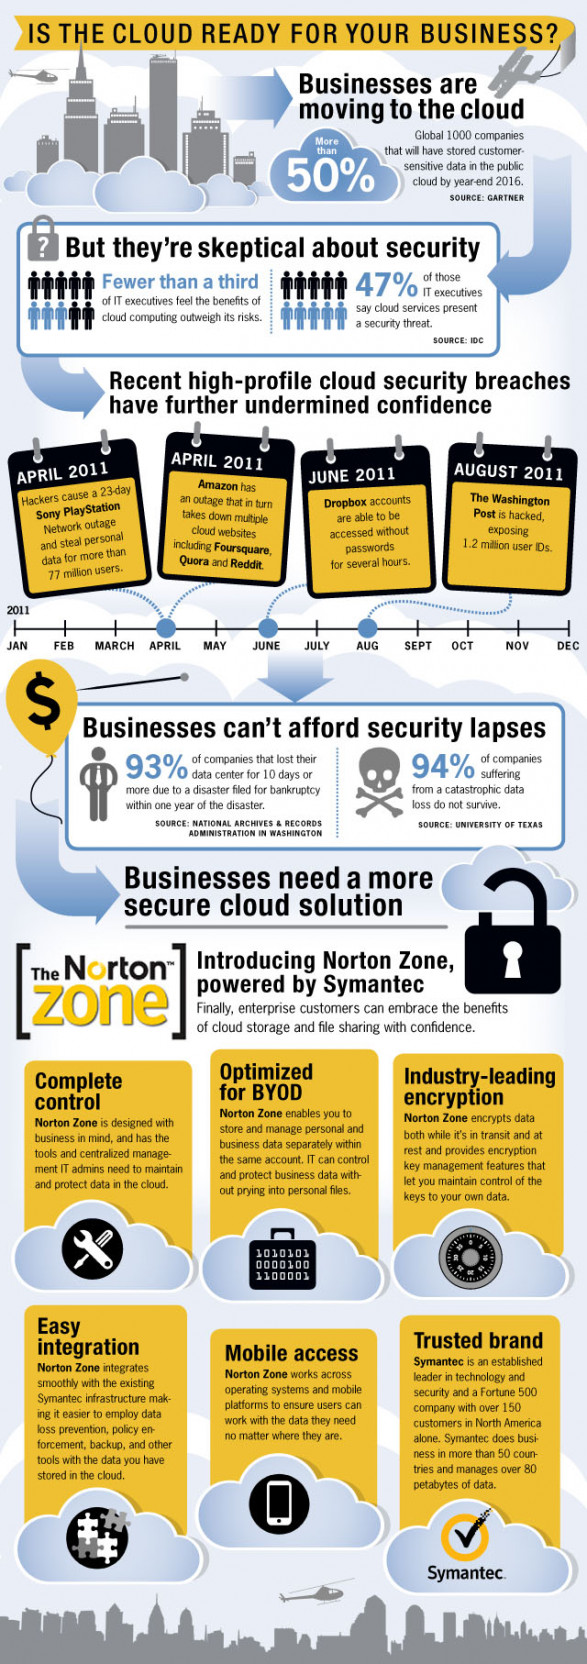 Is the Cloud Ready for Your Business